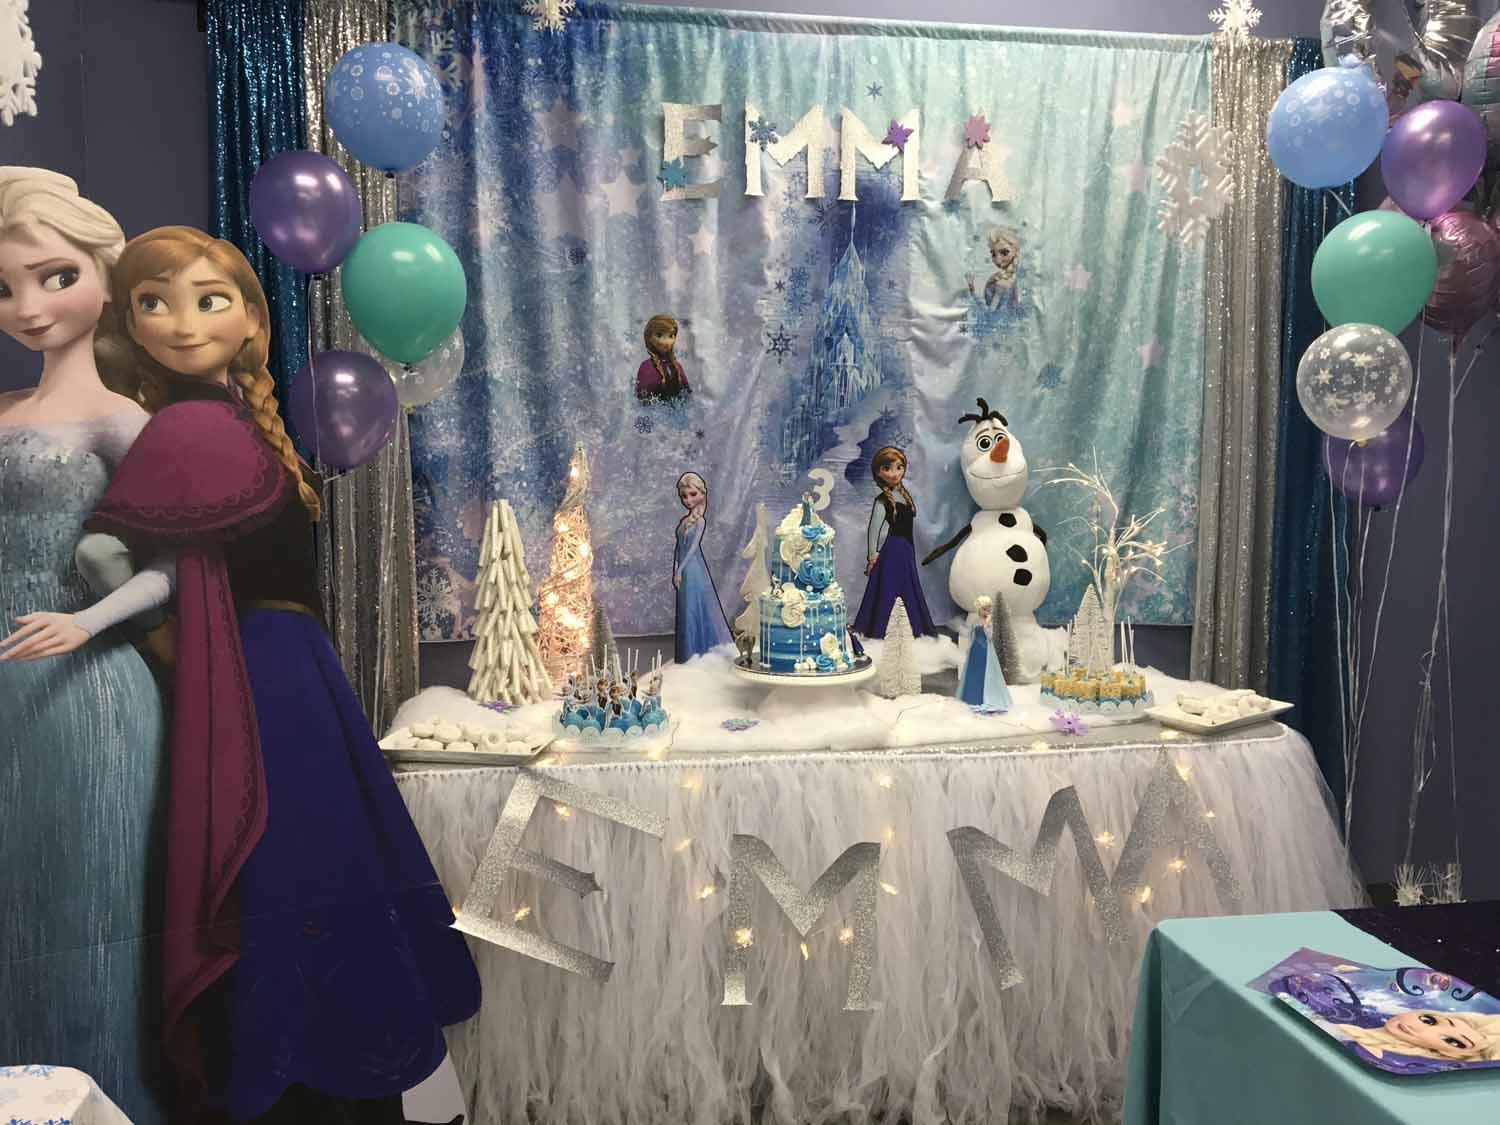 frozen themed birthday party in orlando florida - princesses and princes (4).jpg